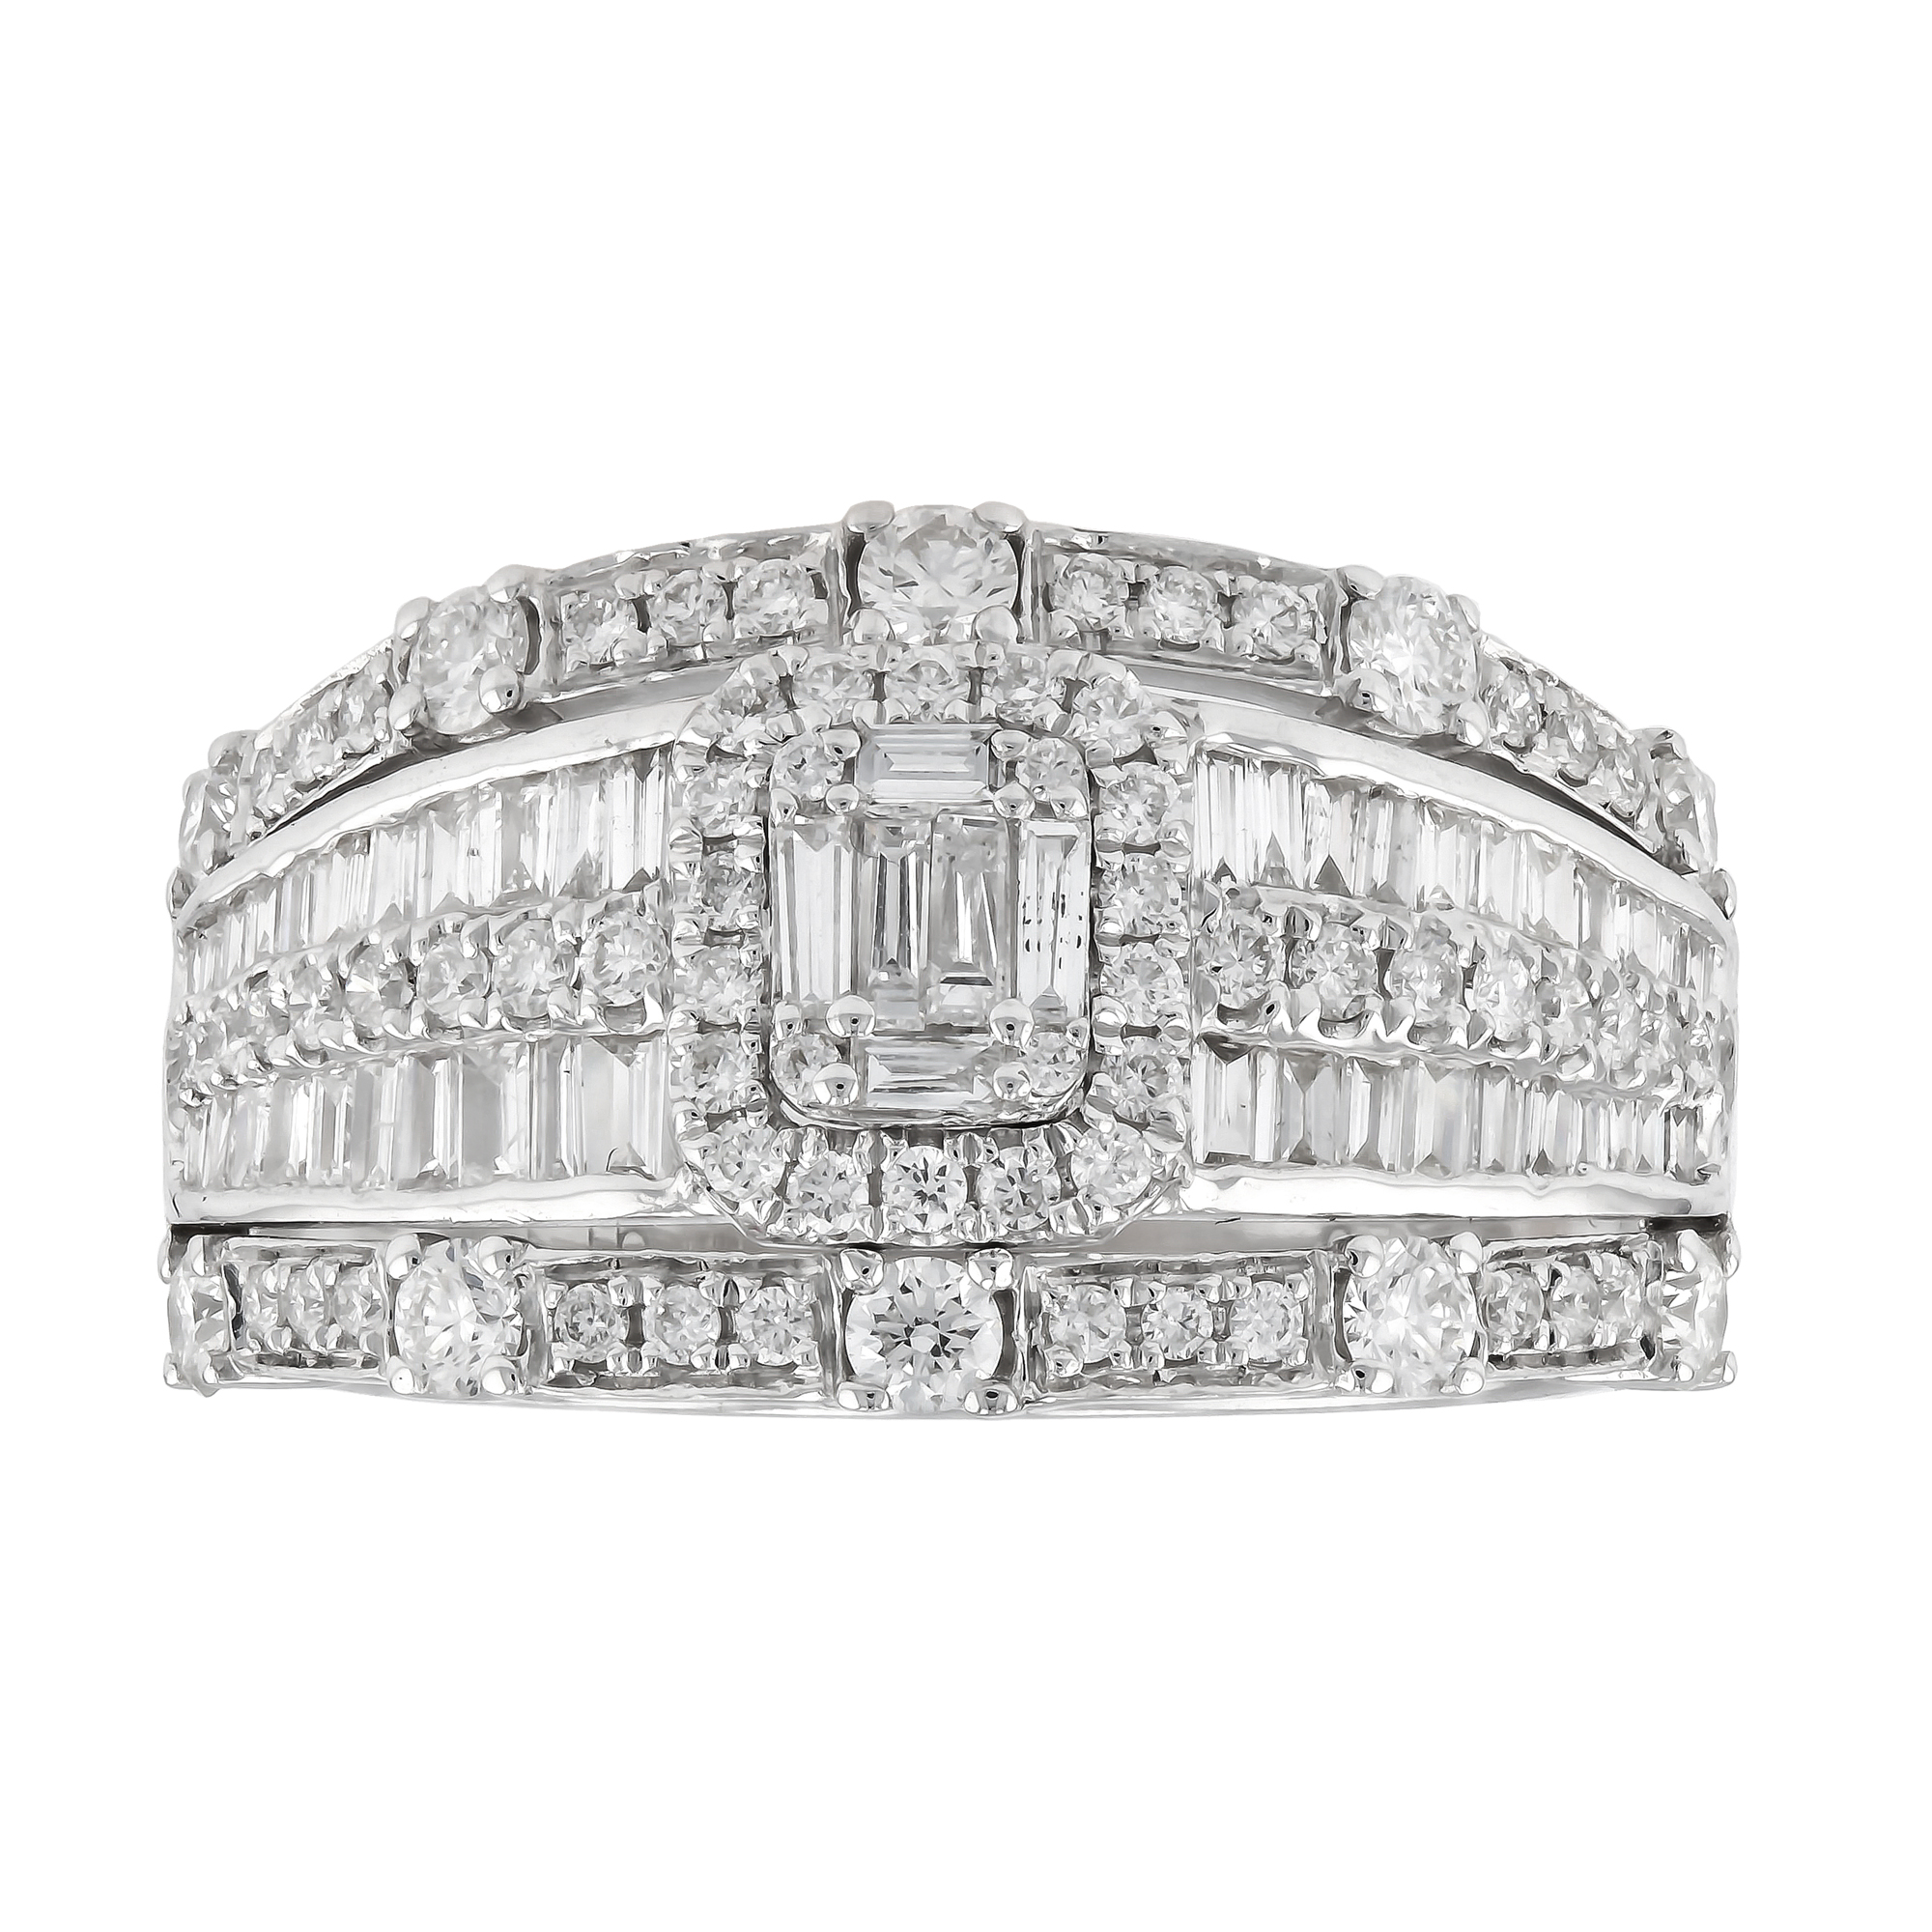 View 1.15ctw Diamond Fasihion Band in 18k White Gold